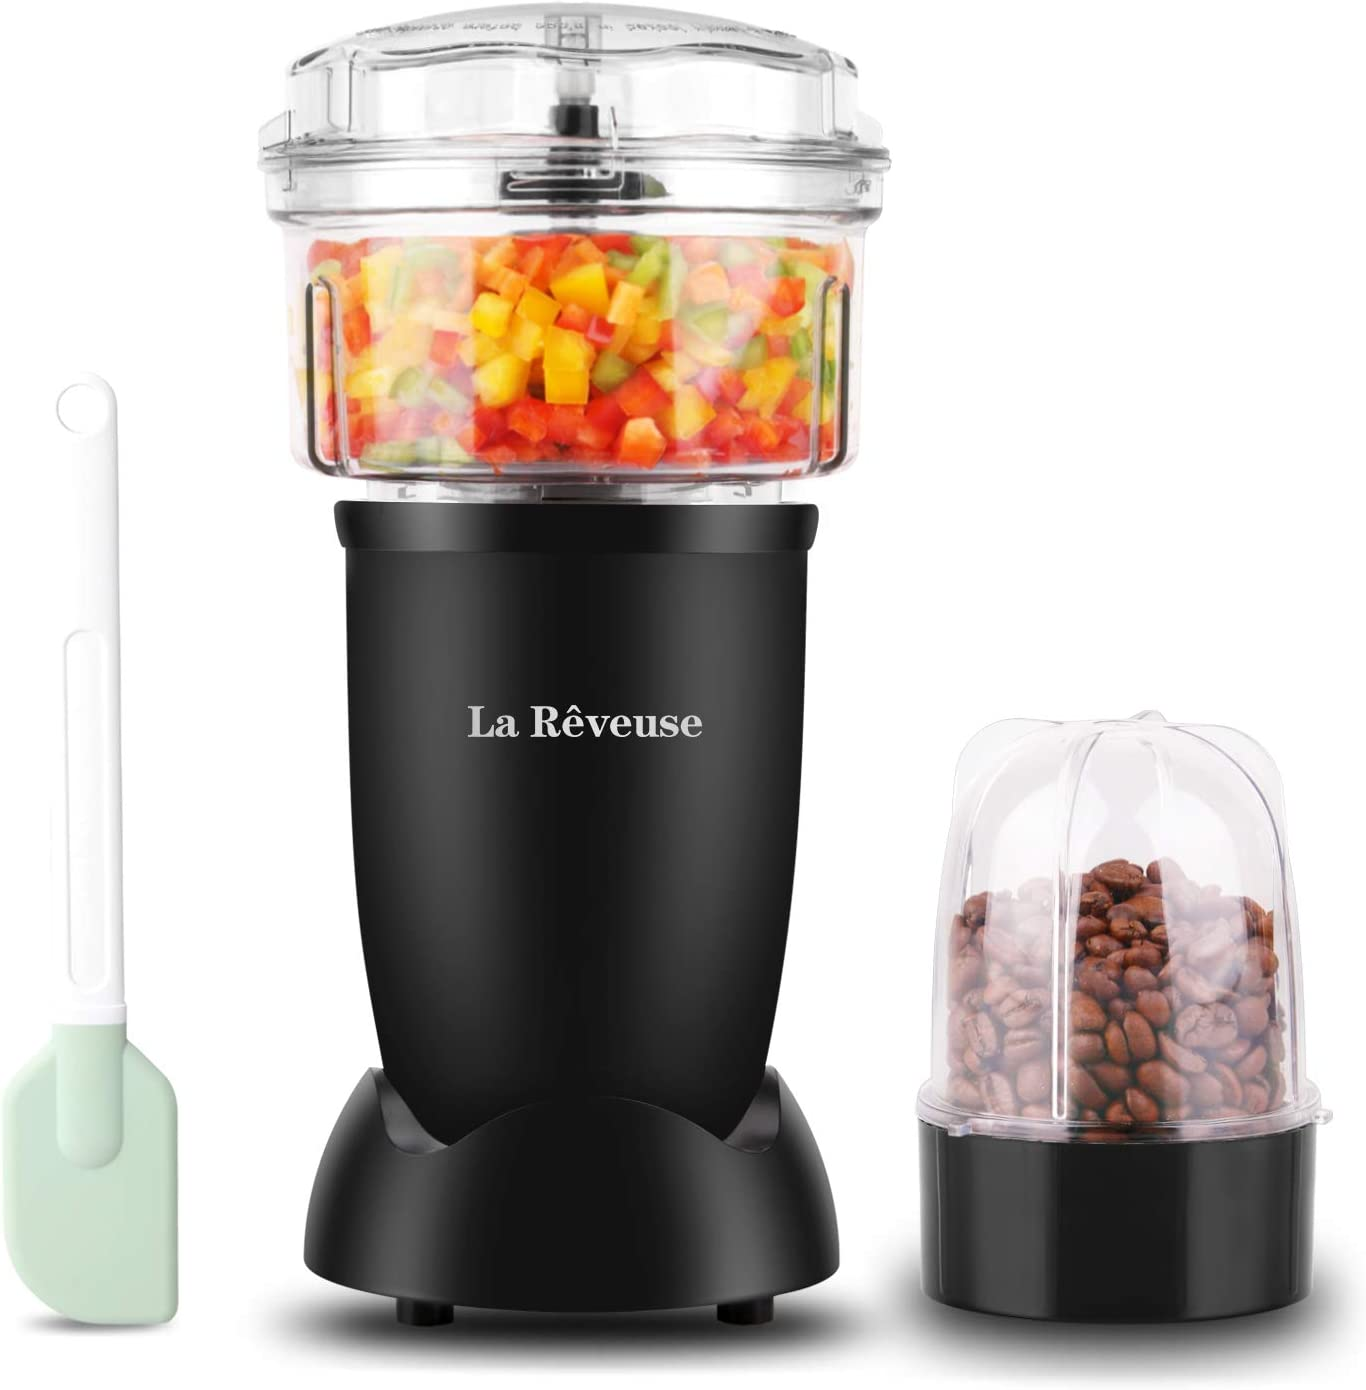 La Reveuse 2-Cup Food Processor & Vegetable Chopper & Food Grinder,250 Watts, for Dicing, mincing,Chopping,Puree,Grinding,Silver (Black)